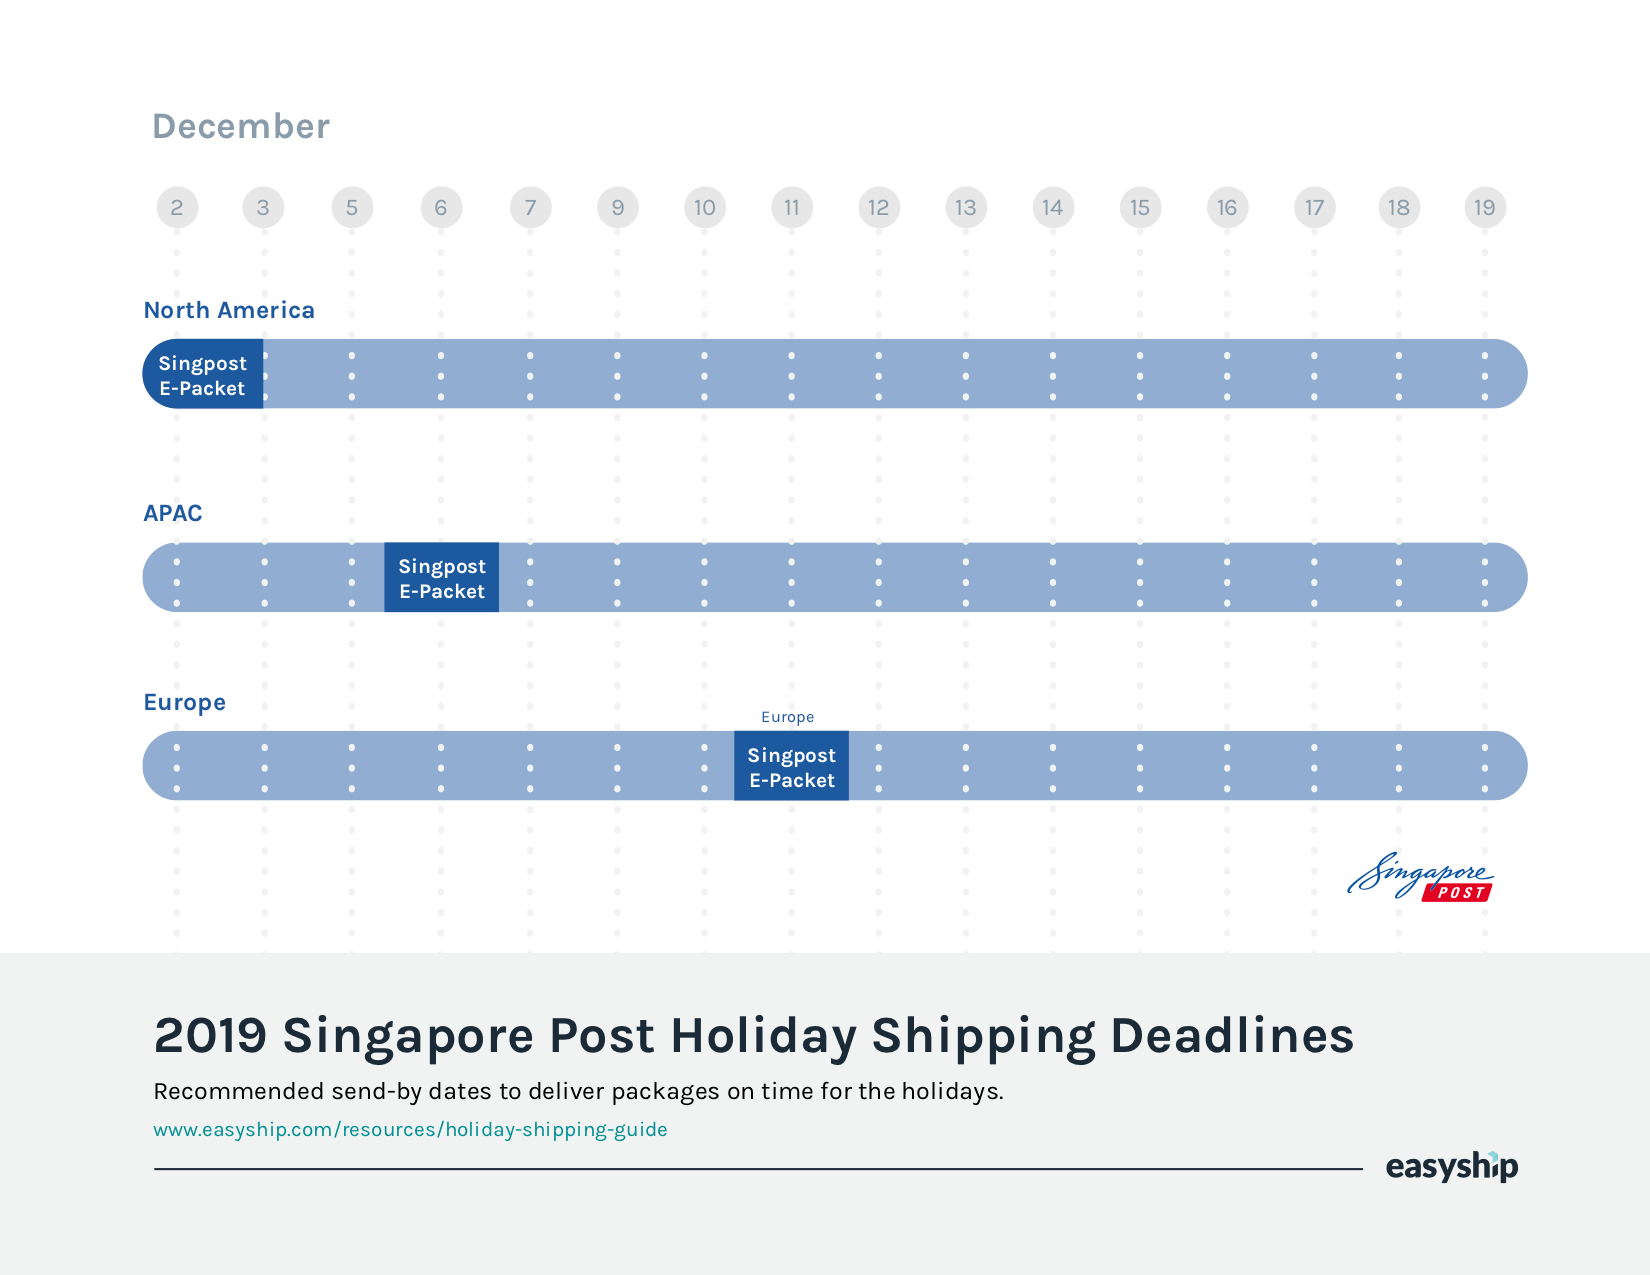 Singapore send-by dates to deliver international packages in time for Christmas 2019.